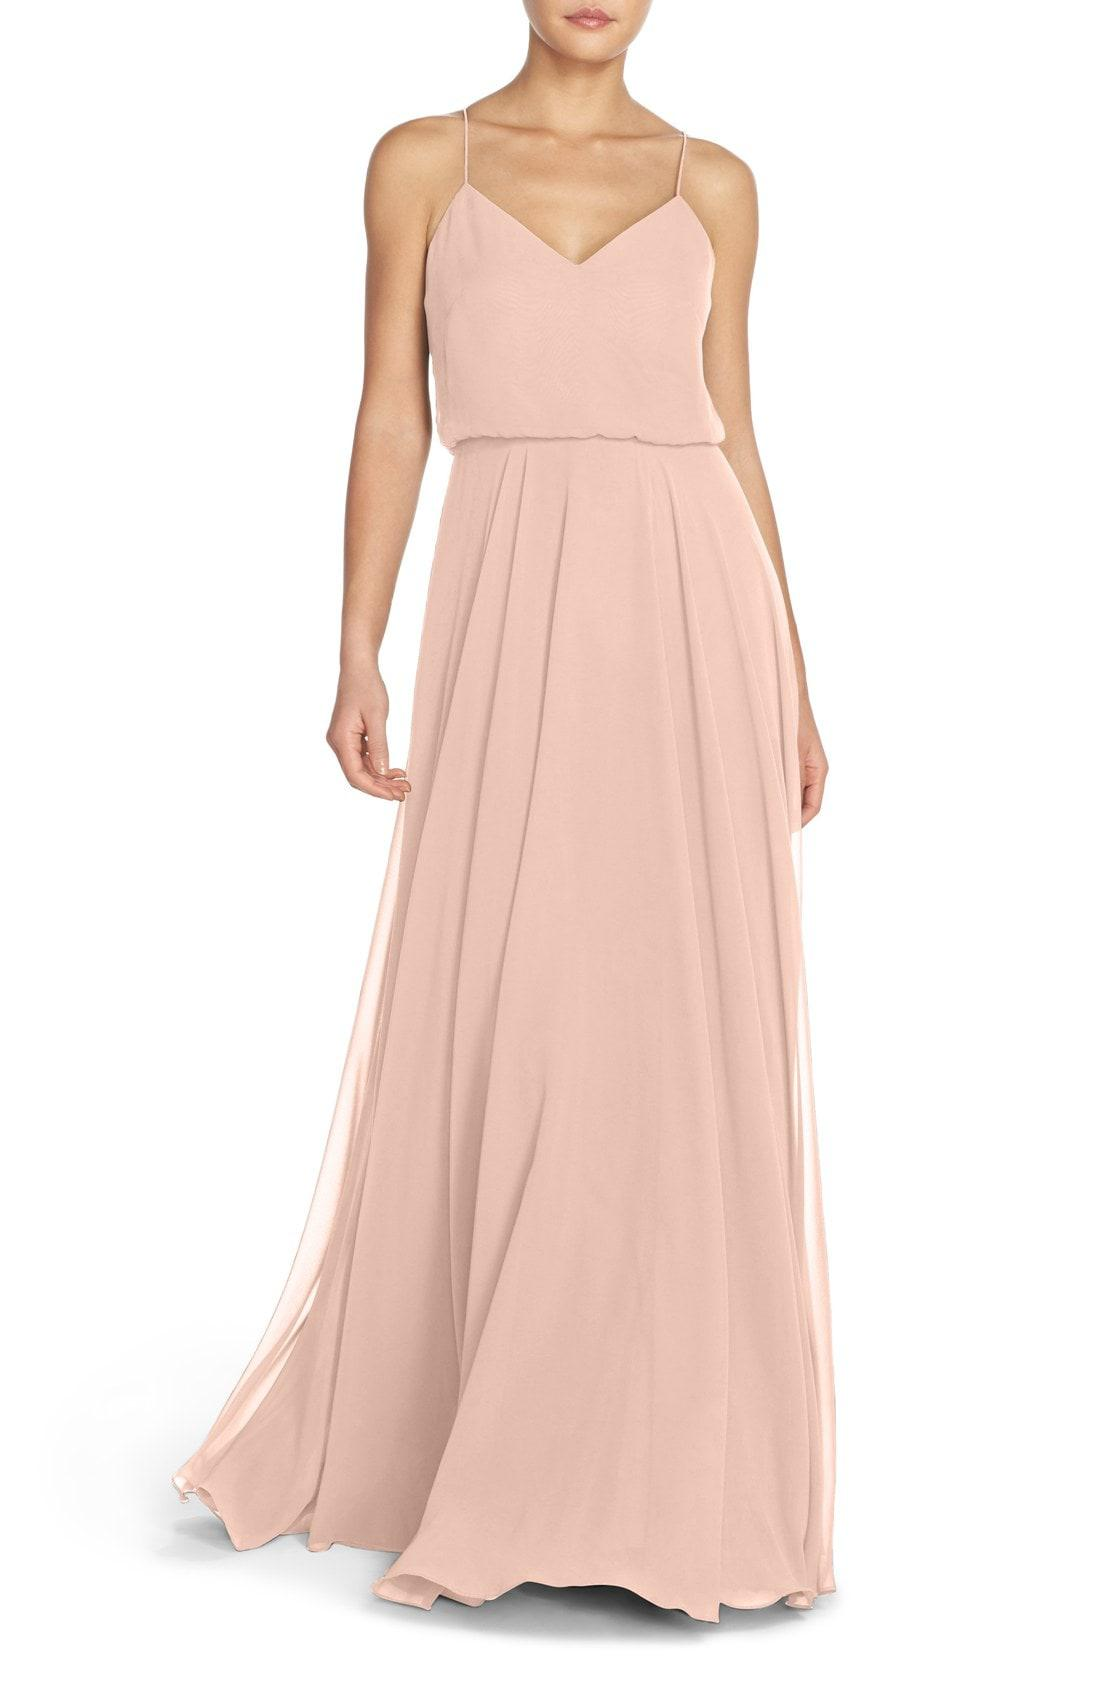 5244bc22dfc3 Lyst - Jenny Yoo Inesse Chiffon V-neck Spaghetti Strap Gown in Pink